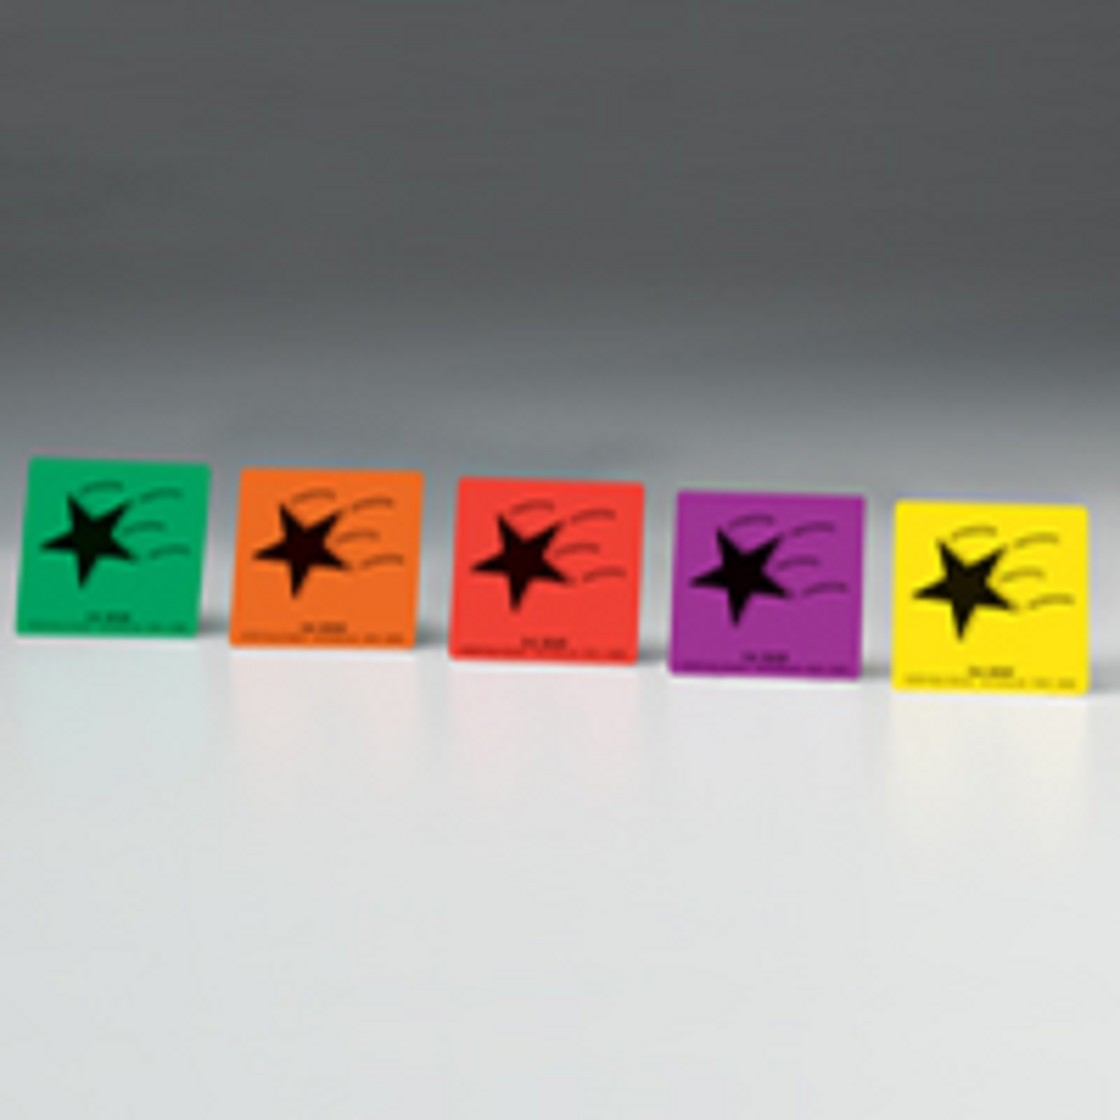 Baby bed fall prevention - Posey Falling Star Magnets